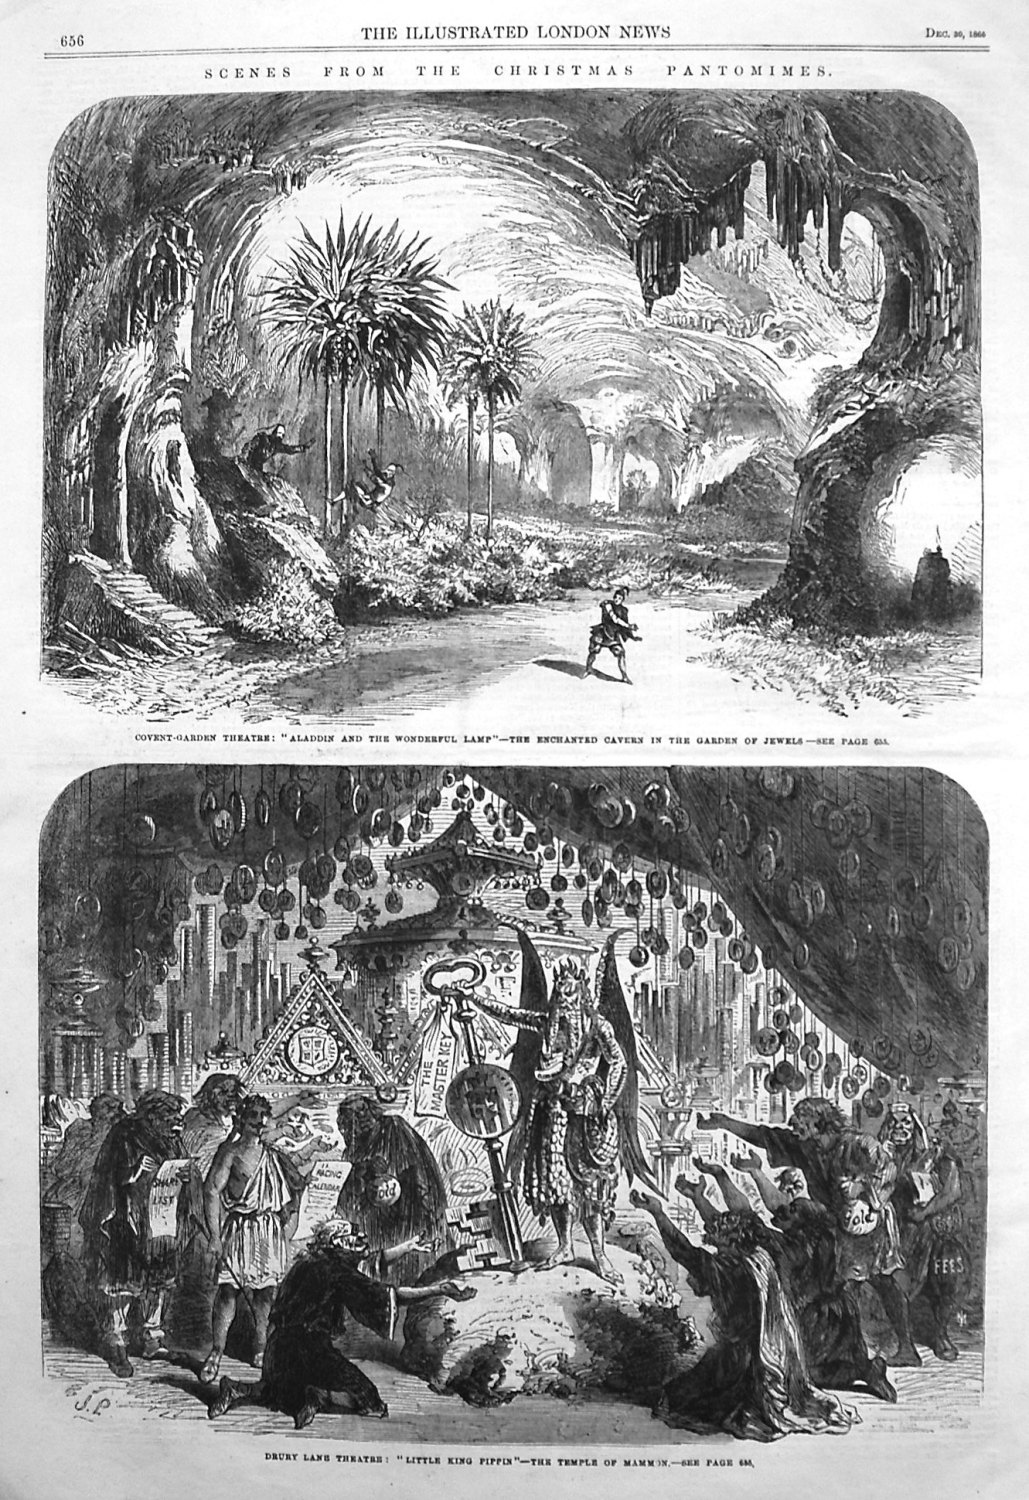 Scenes from the Christmas Pantomimes. 1865